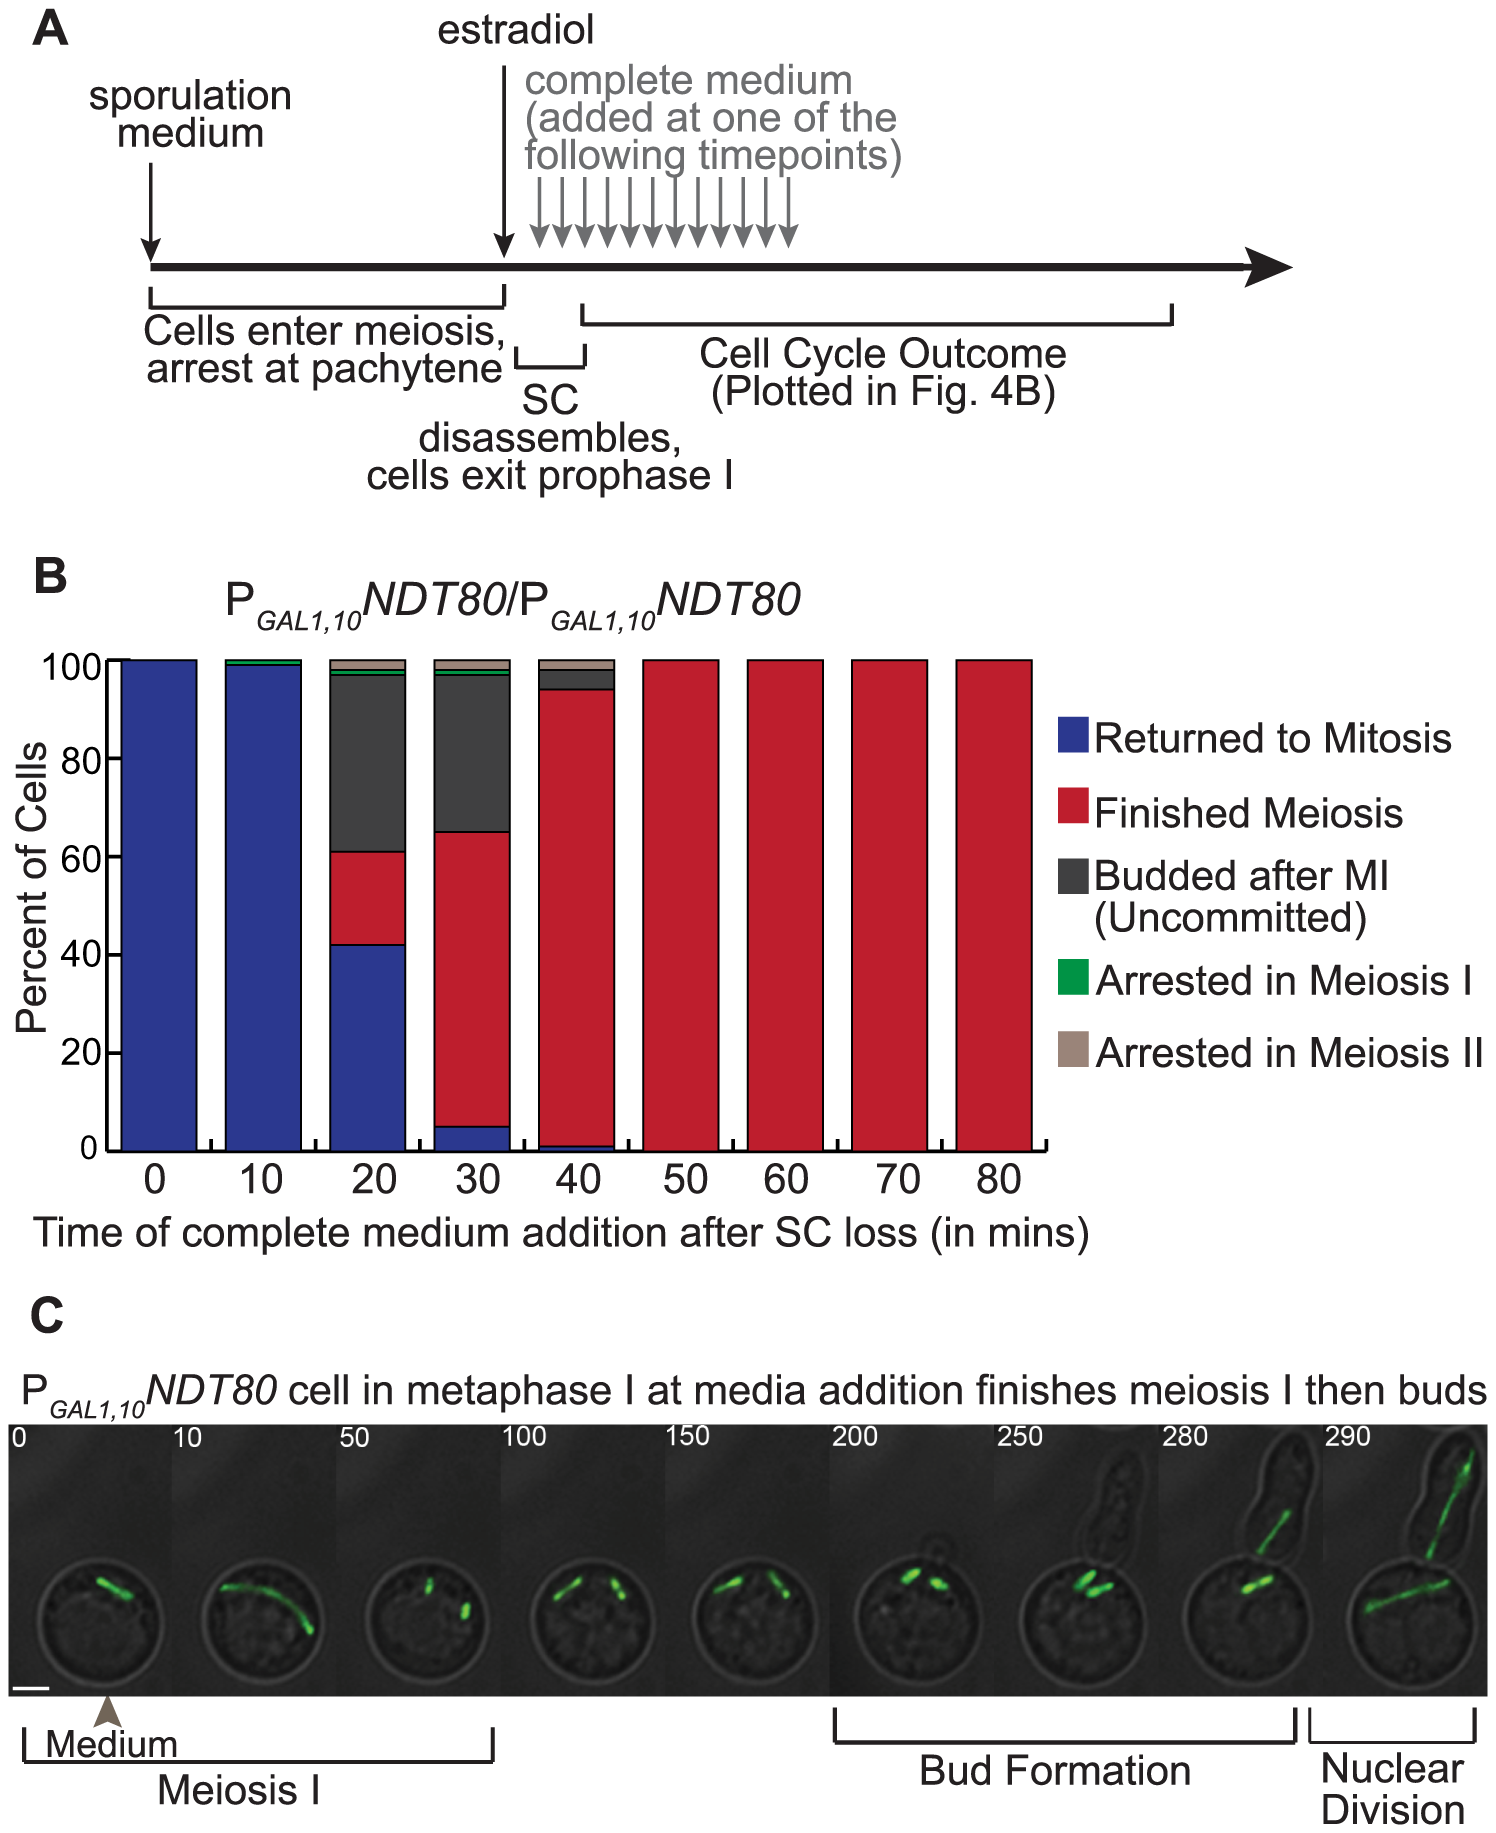 Altering <i>NDT80</i> expression results in inappropriately uncommitted cells.